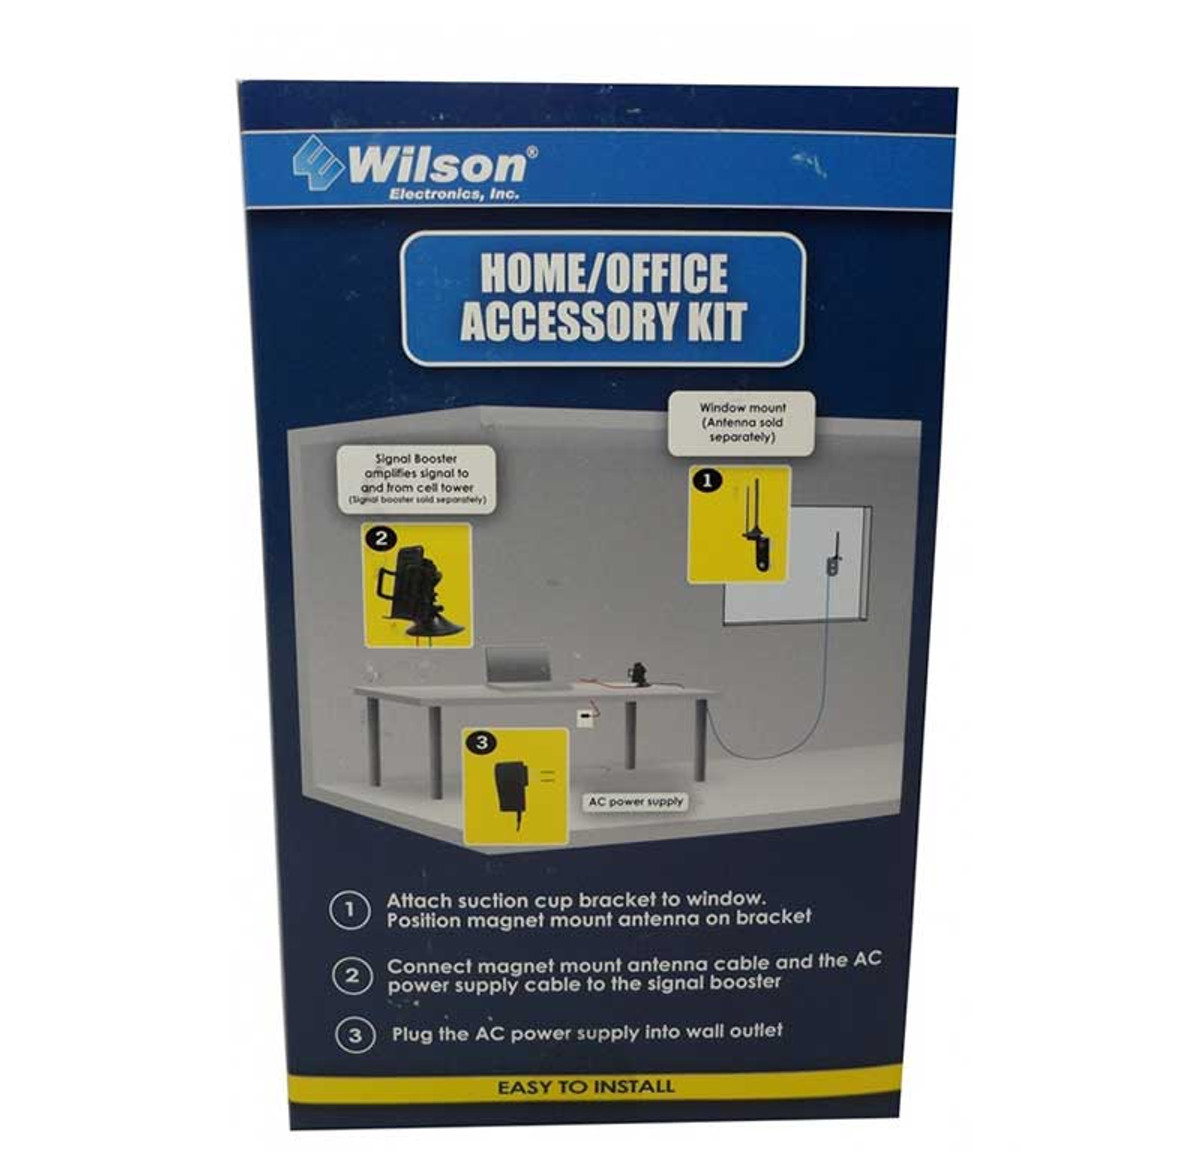 Wilson 859970 Home & Office Accessory Kit for use with Sleek amplifiers, back of retail box